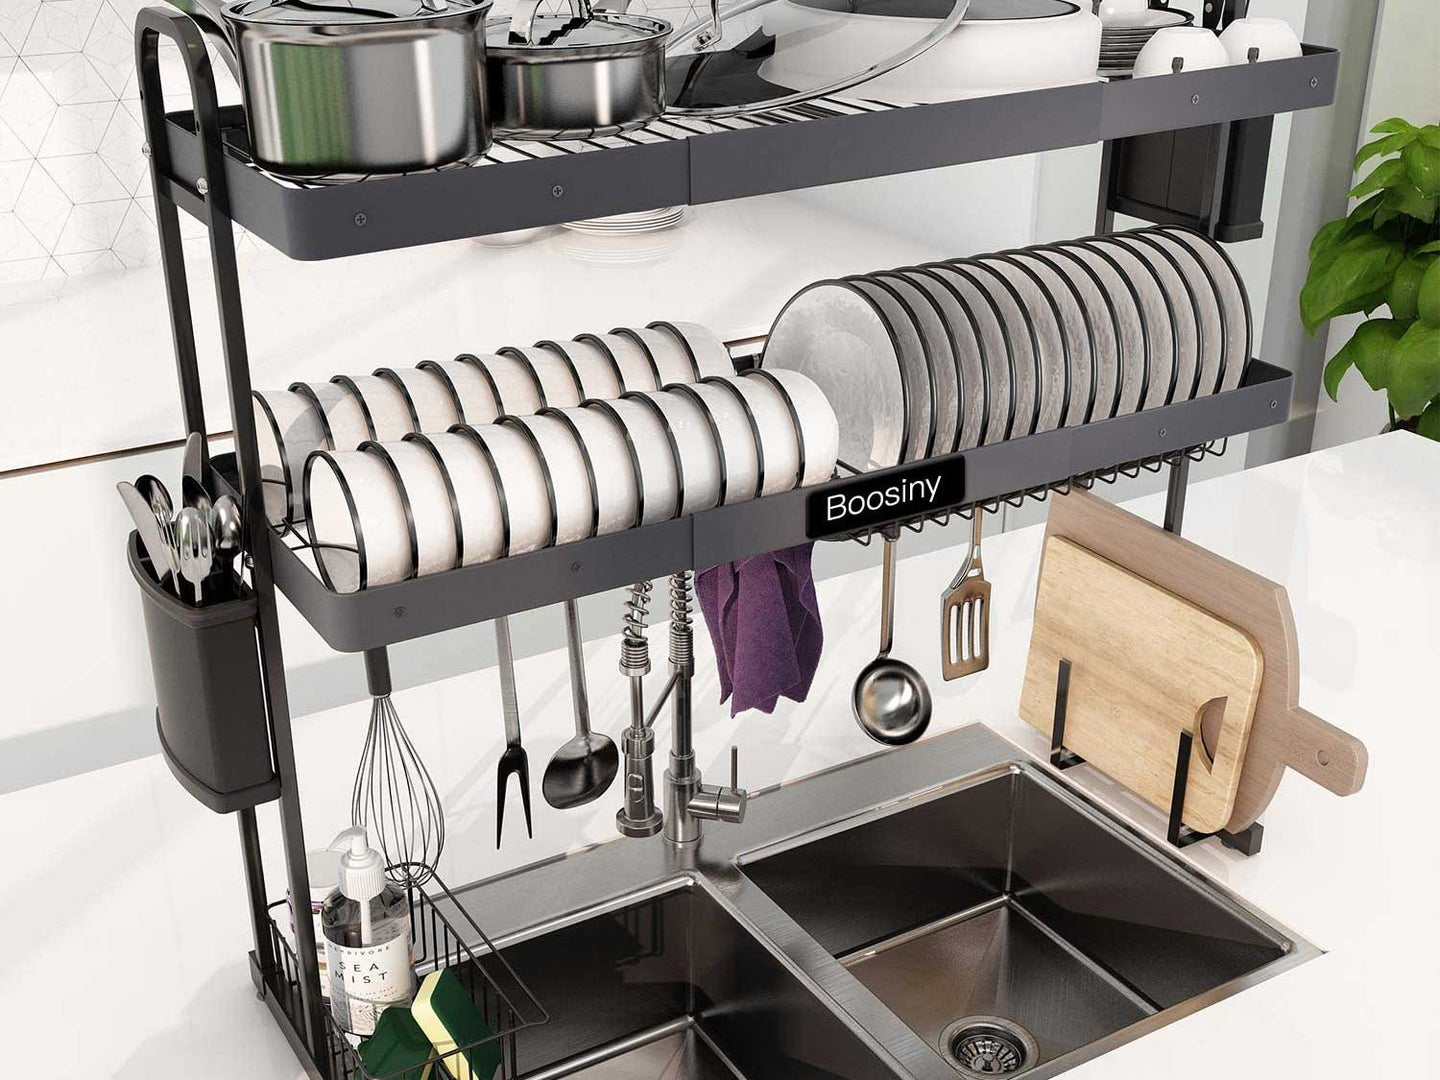 Over-the-Sink drying rack